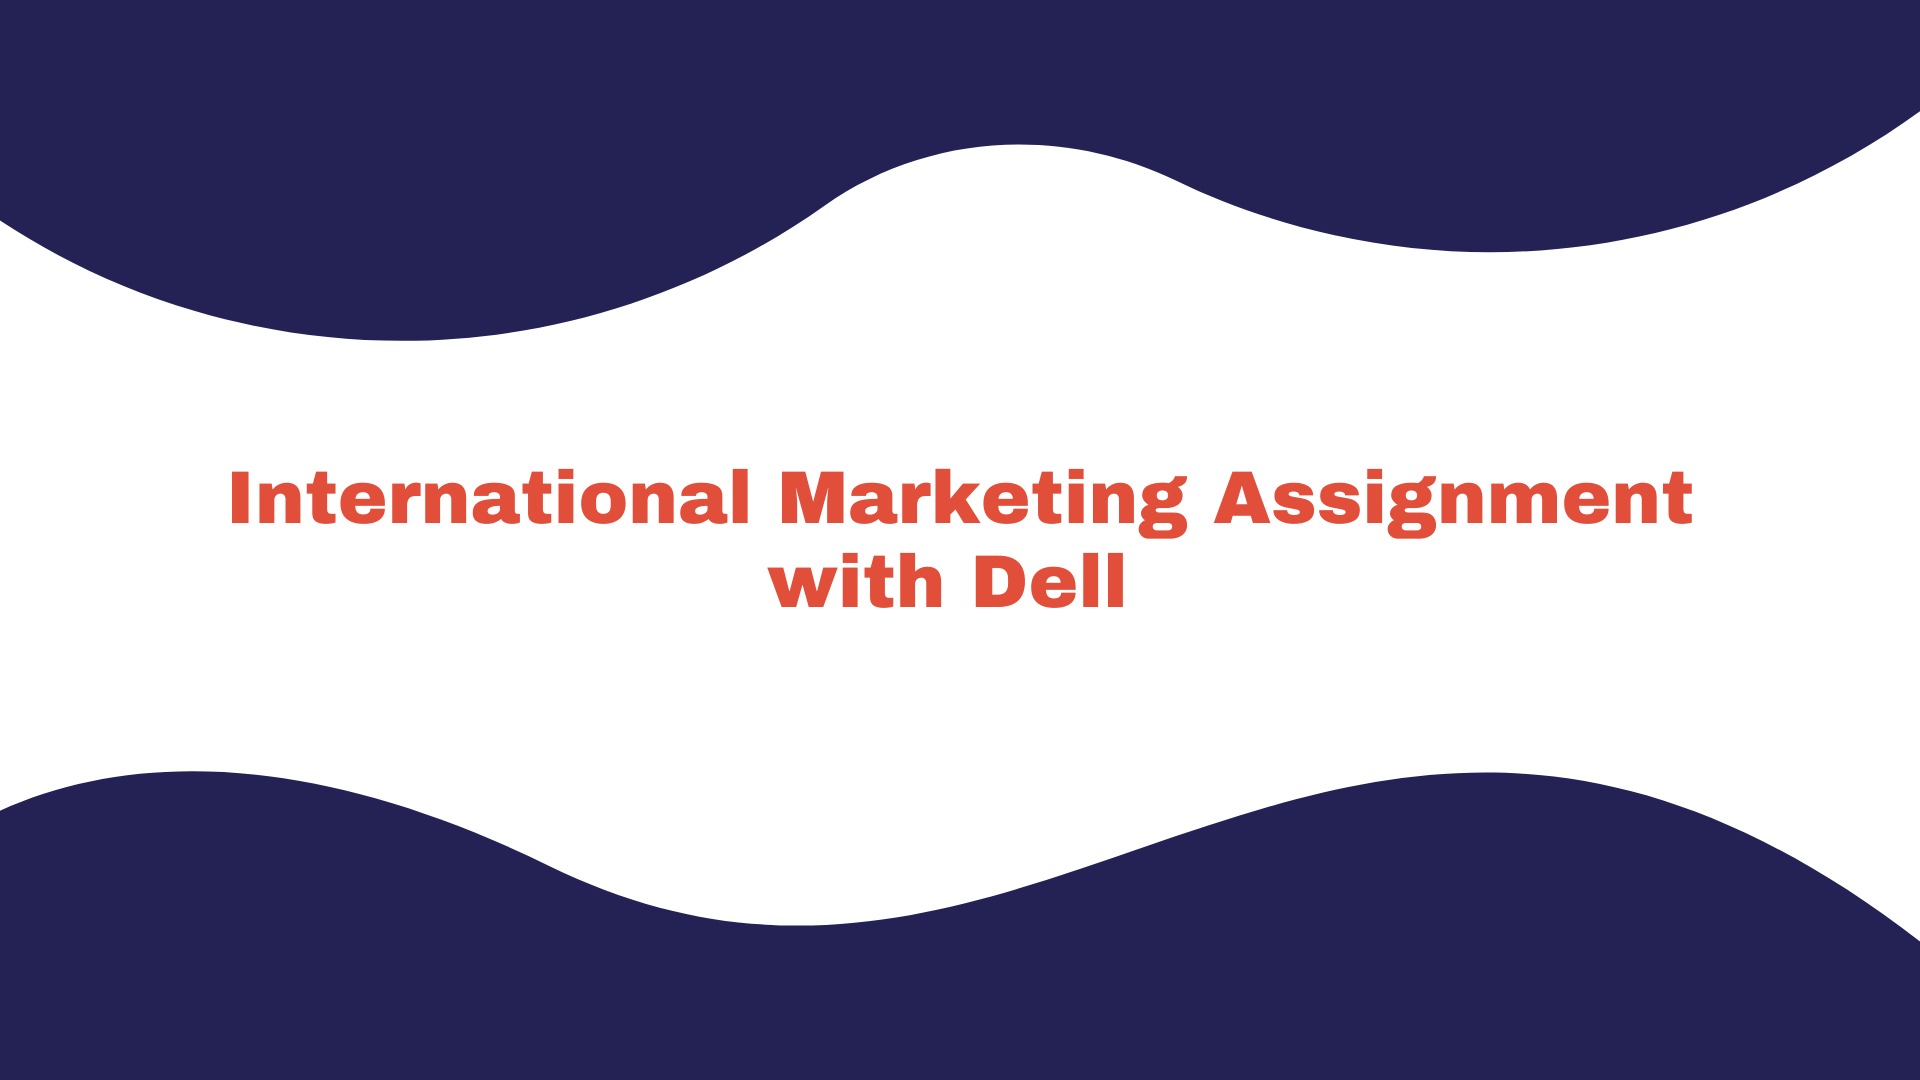 International Marketing with Dell Inc _Assignment 1